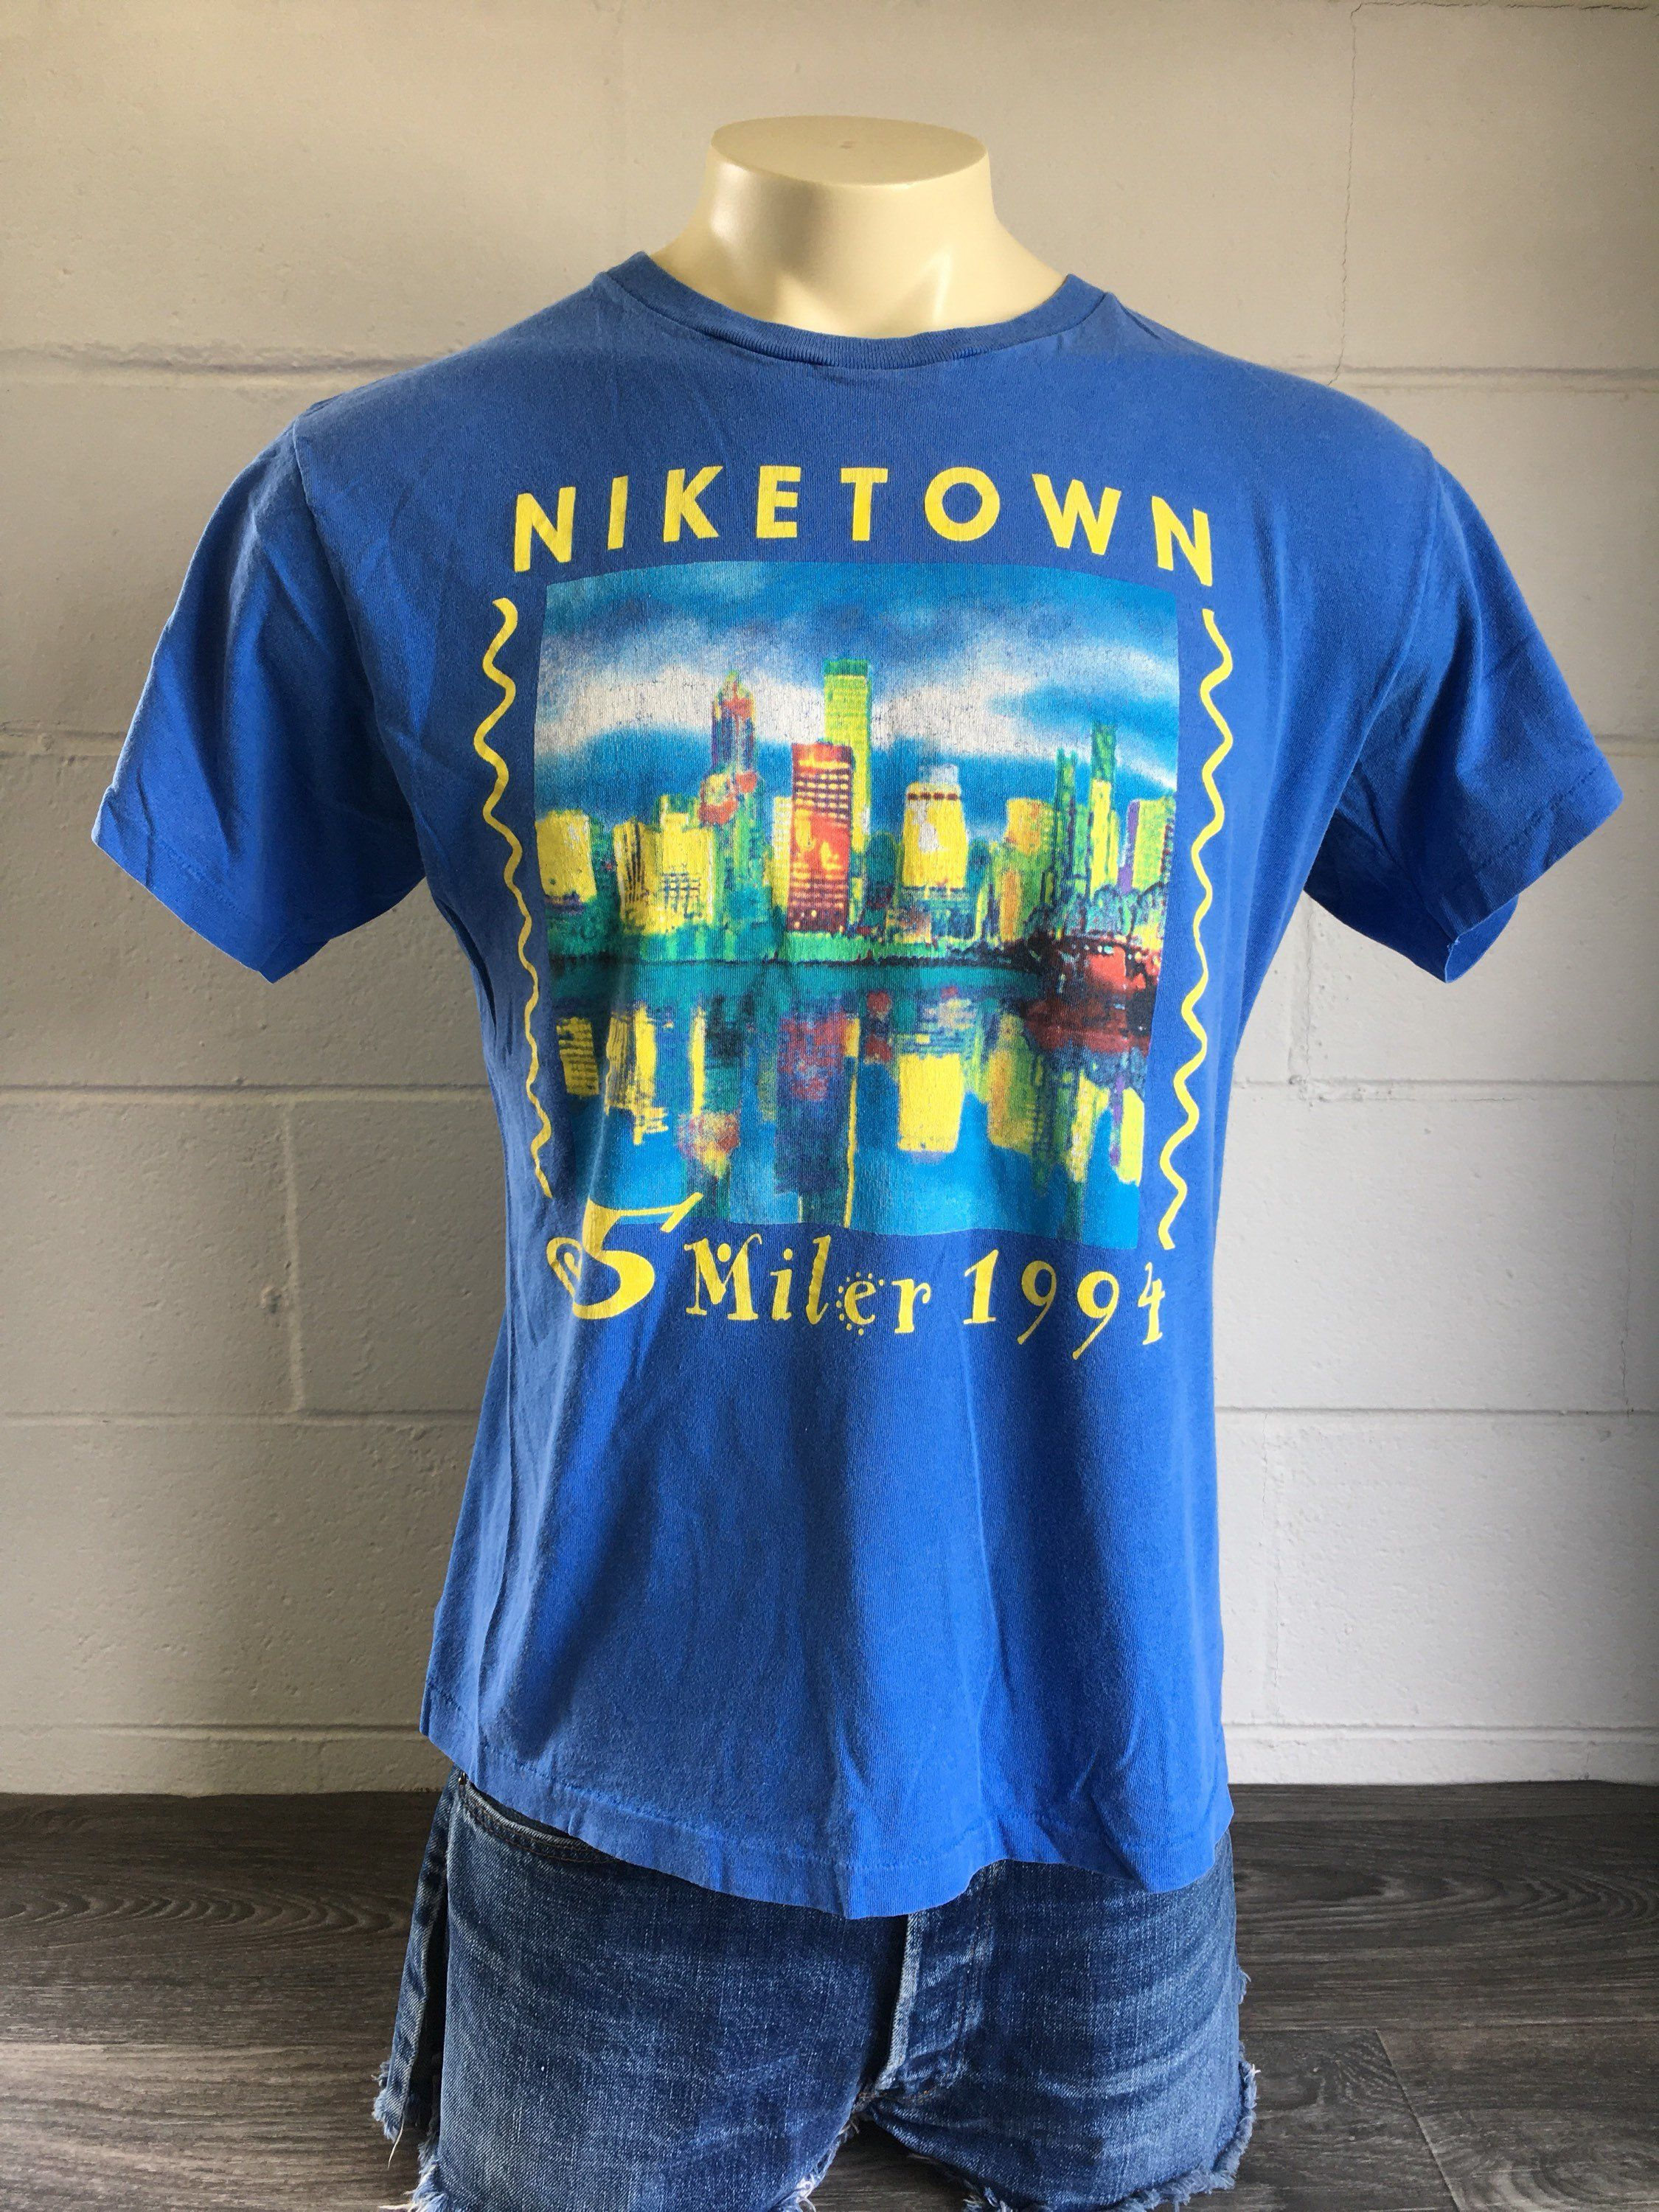 d0c95ae9271 NIKE Tshirt 1994 90's Vintage Niketown Just Do It Grey Tag Shirt 5 Miler  Double Sided Rare Race Run Tee Large by sweetVTGtshirt on Etsy